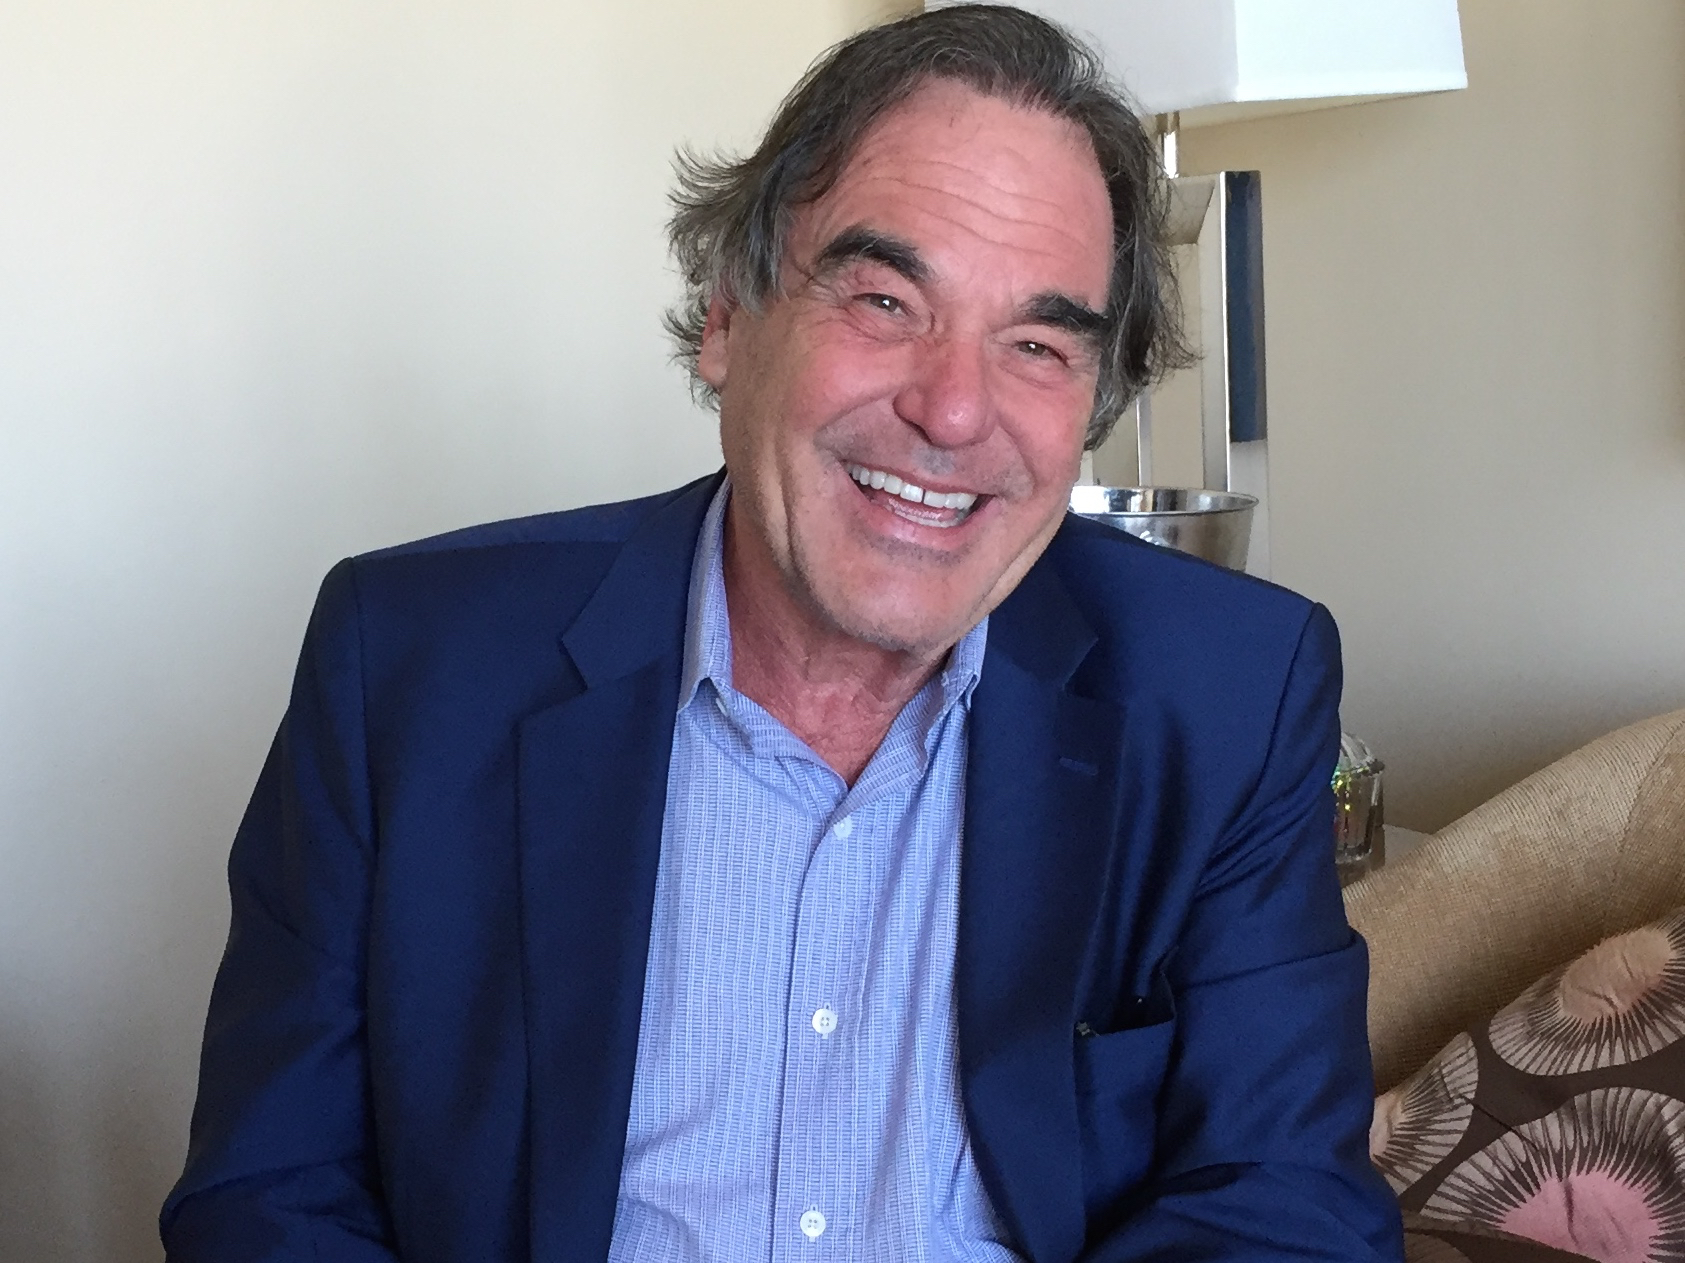 Gotham Awards 2016: Oliver Stone Offers His Advice to Filmmakers in Trump Era